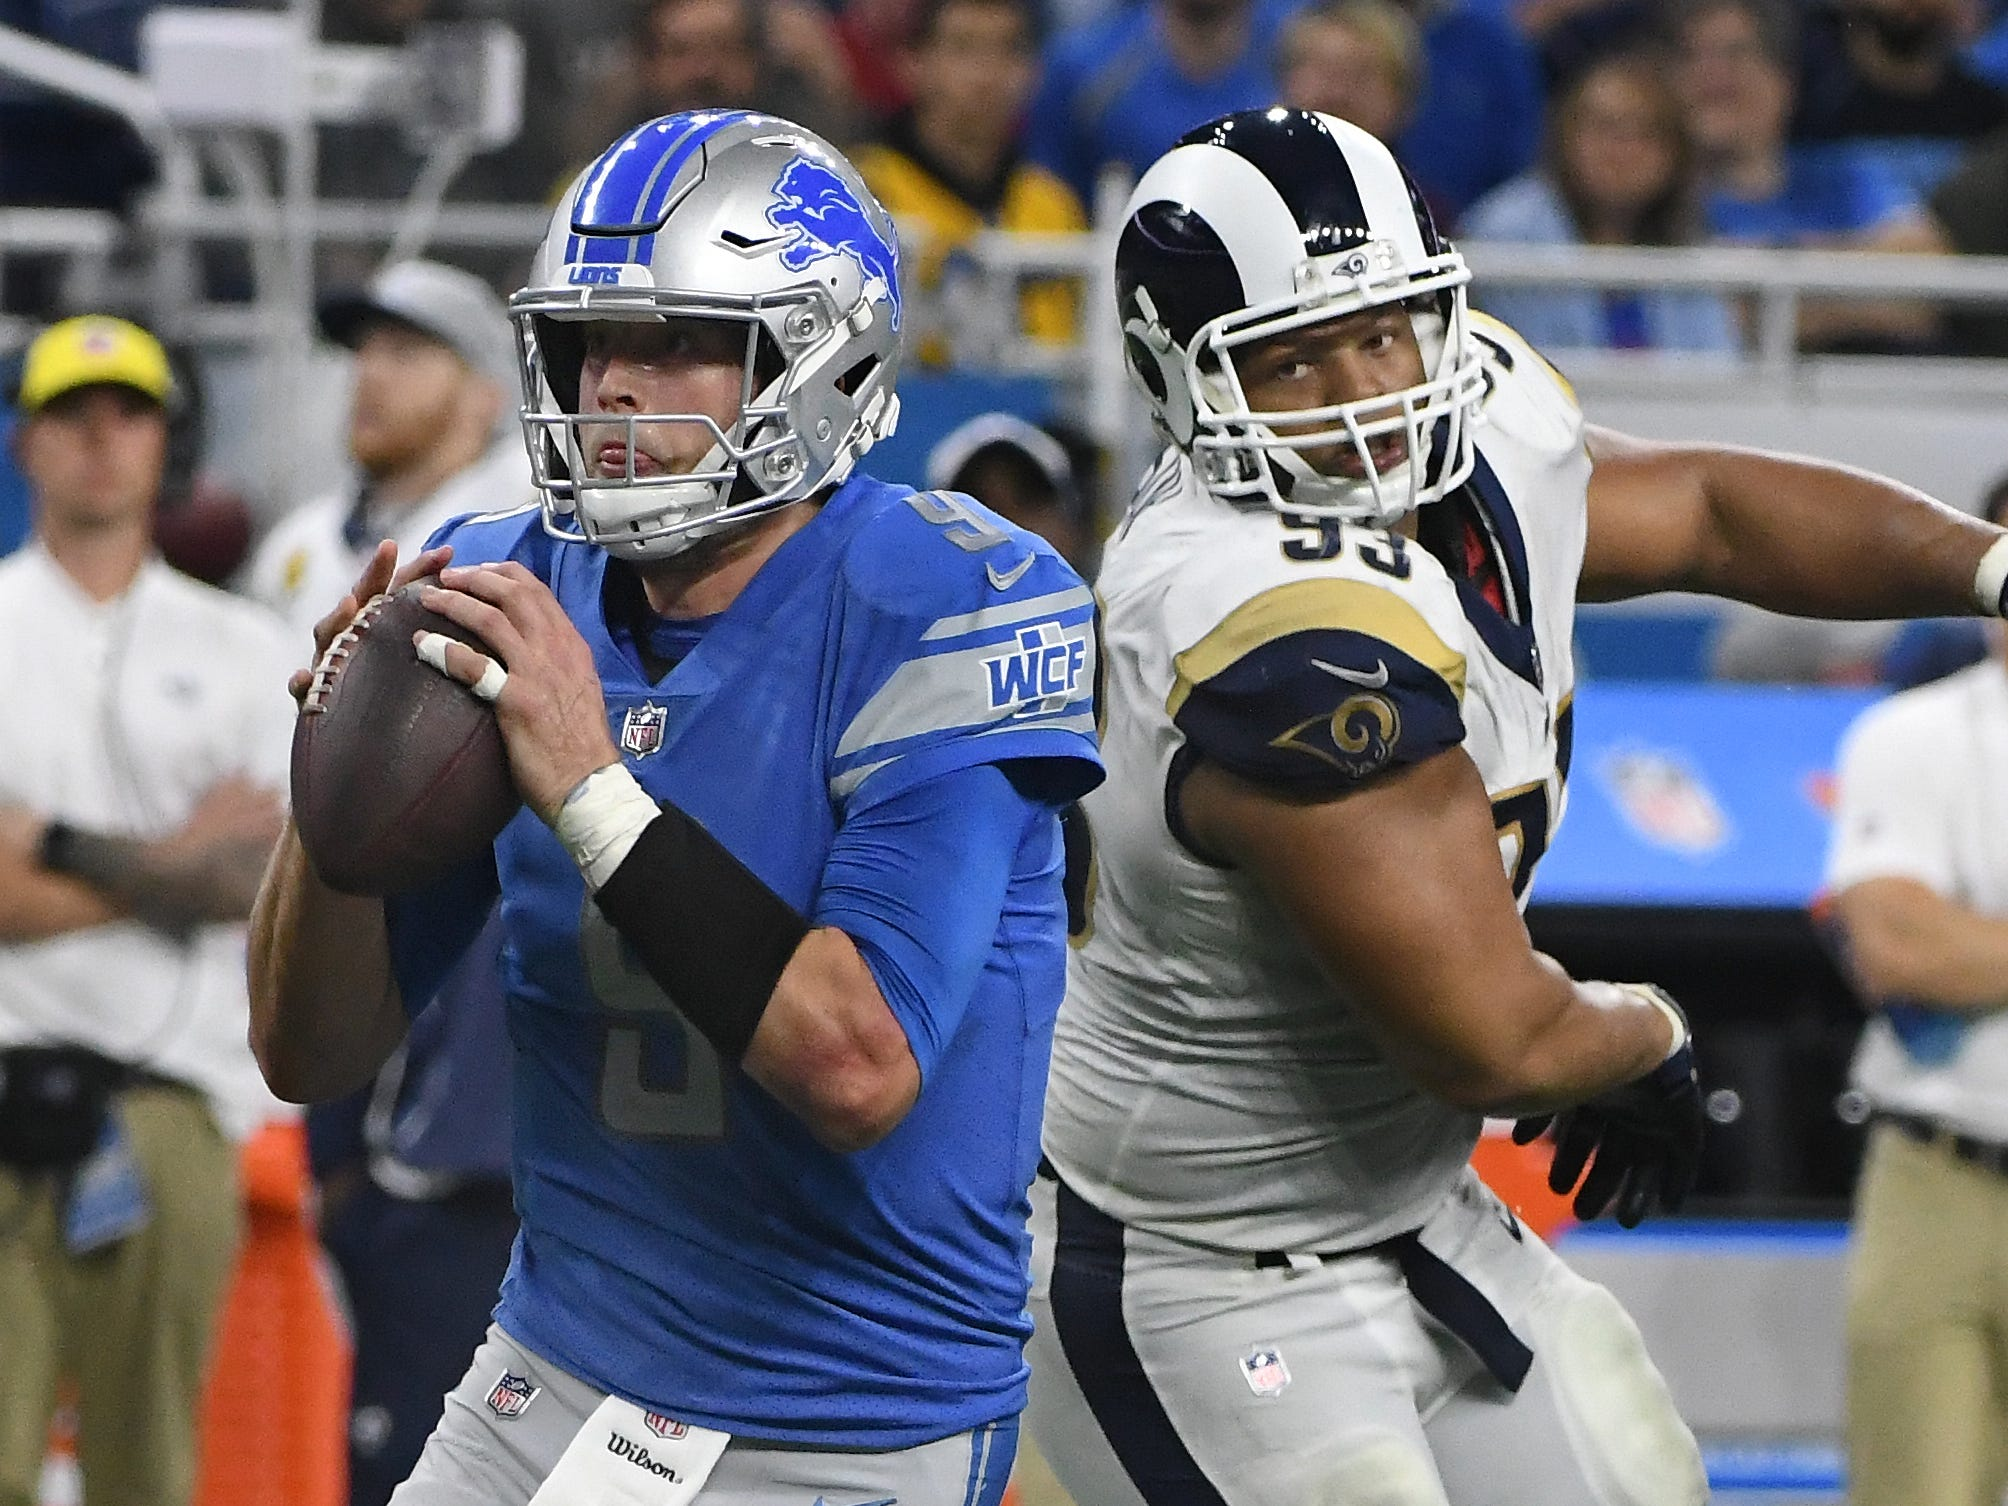 Lions quarterback Matthew Stafford scrambles out of the pocket, with pressure from Rams' Ndamukong Suh, but throws an incompletion in the end zone late in the fourth quarter.